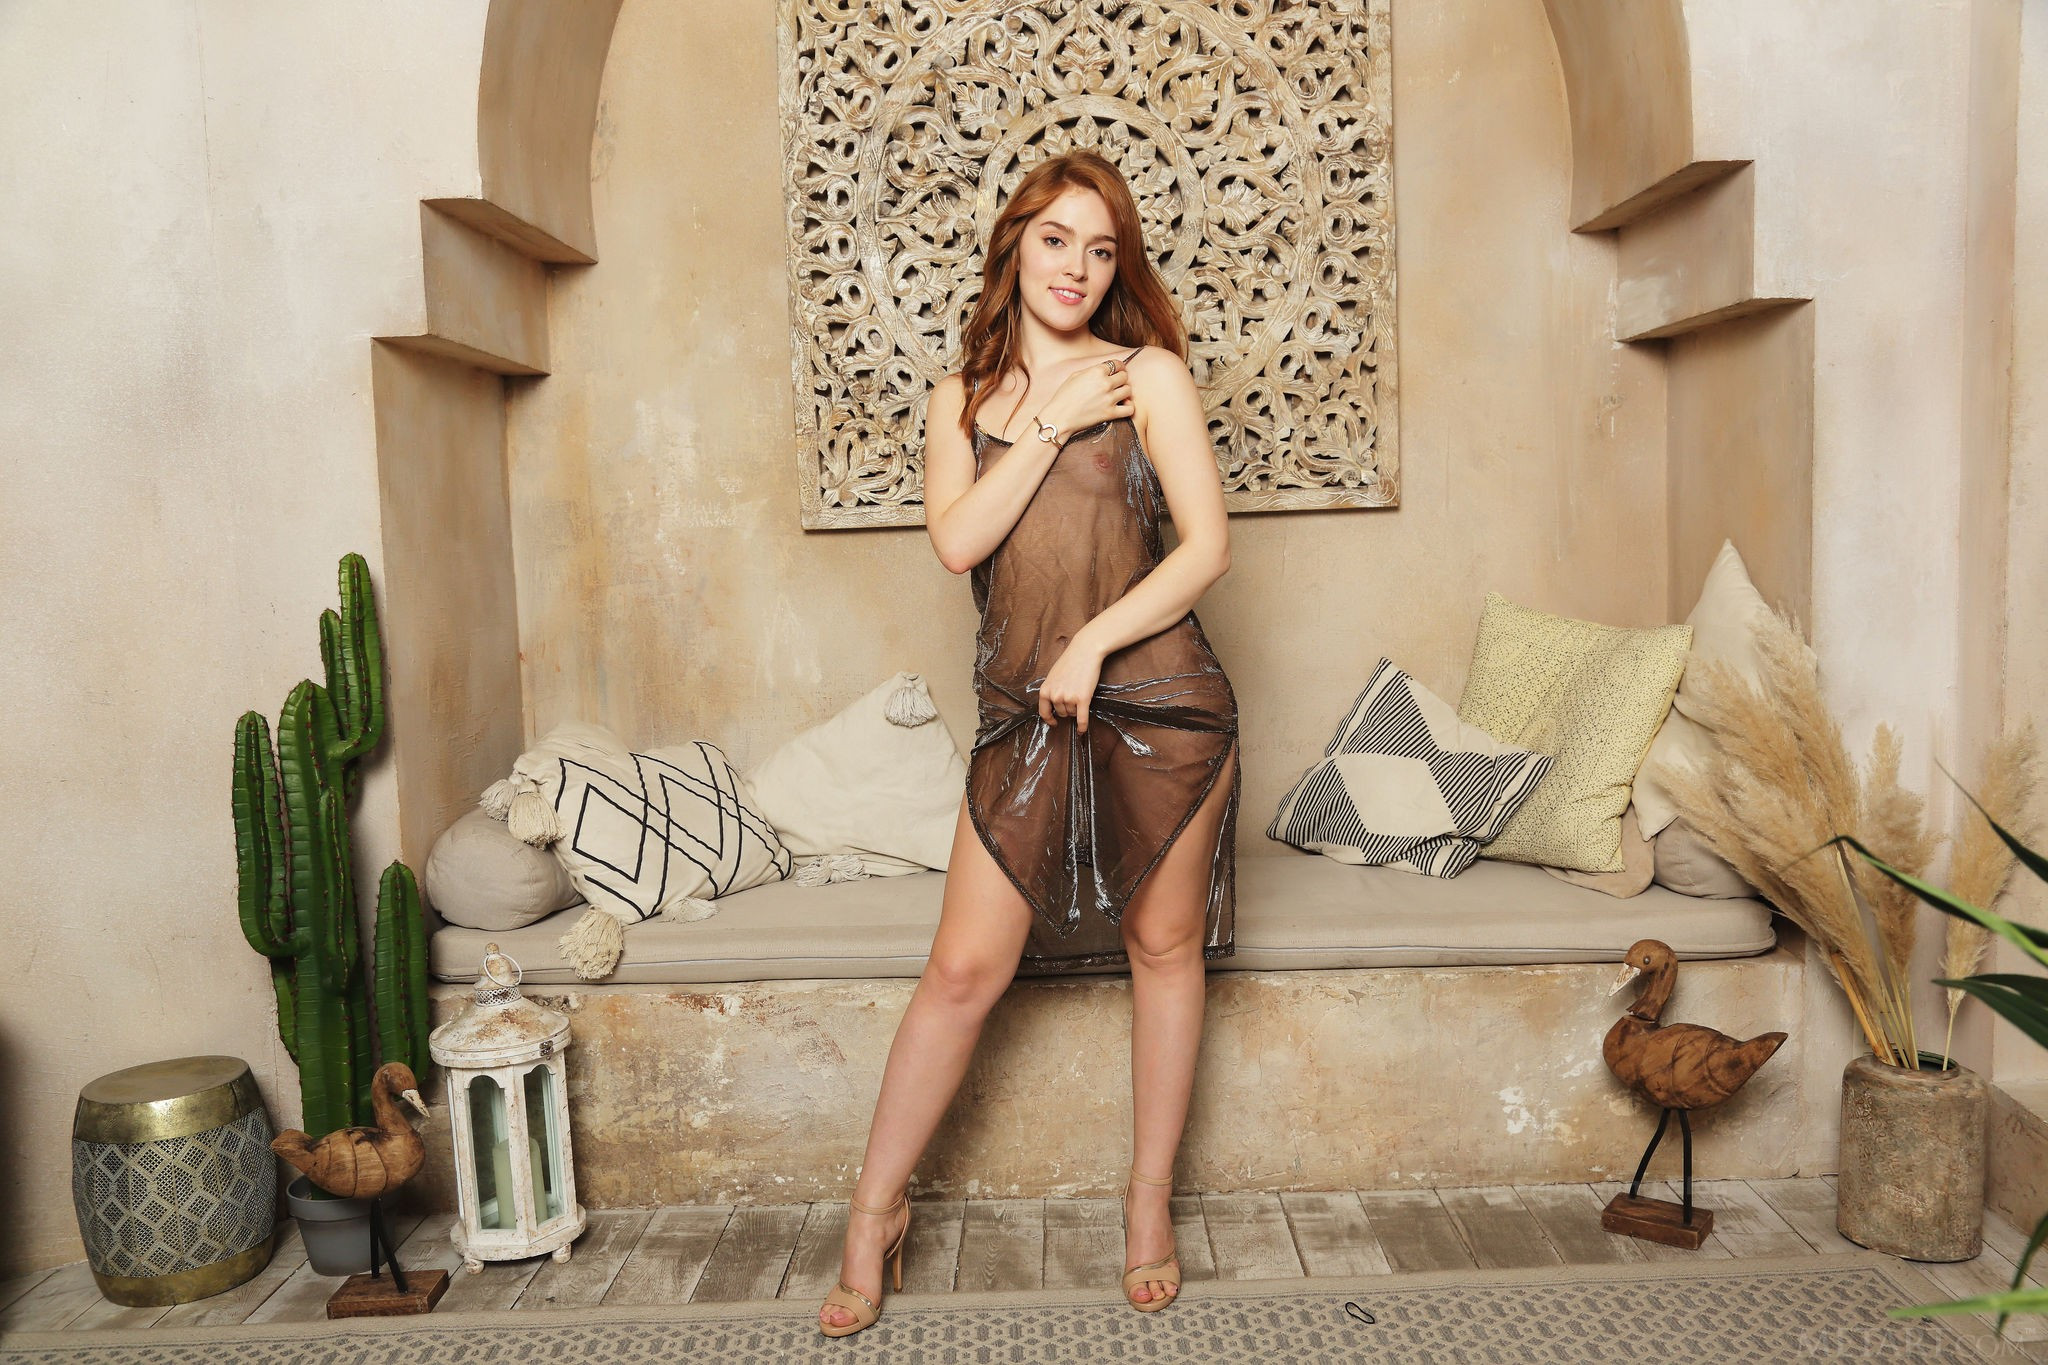 19 Jia Lissa Nude Sheer Perfection fappenings.com